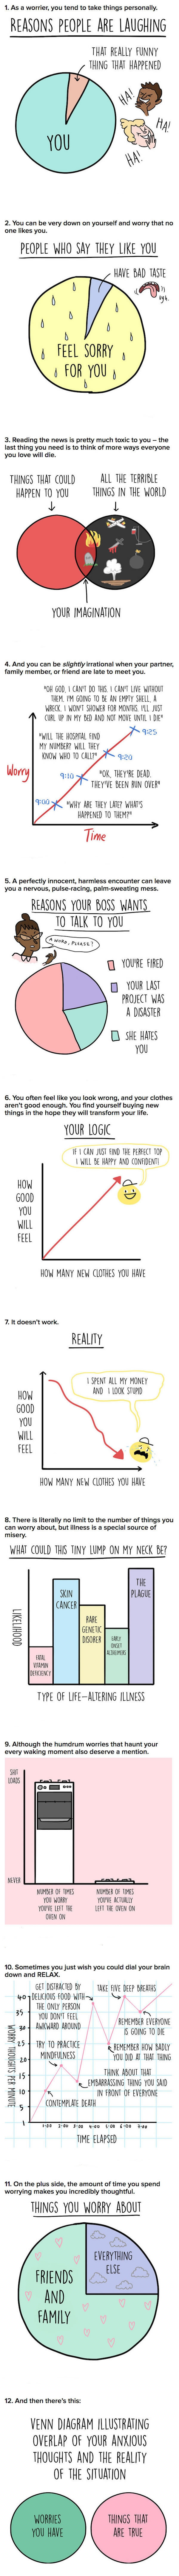 Charts accurate for people who worry a lot